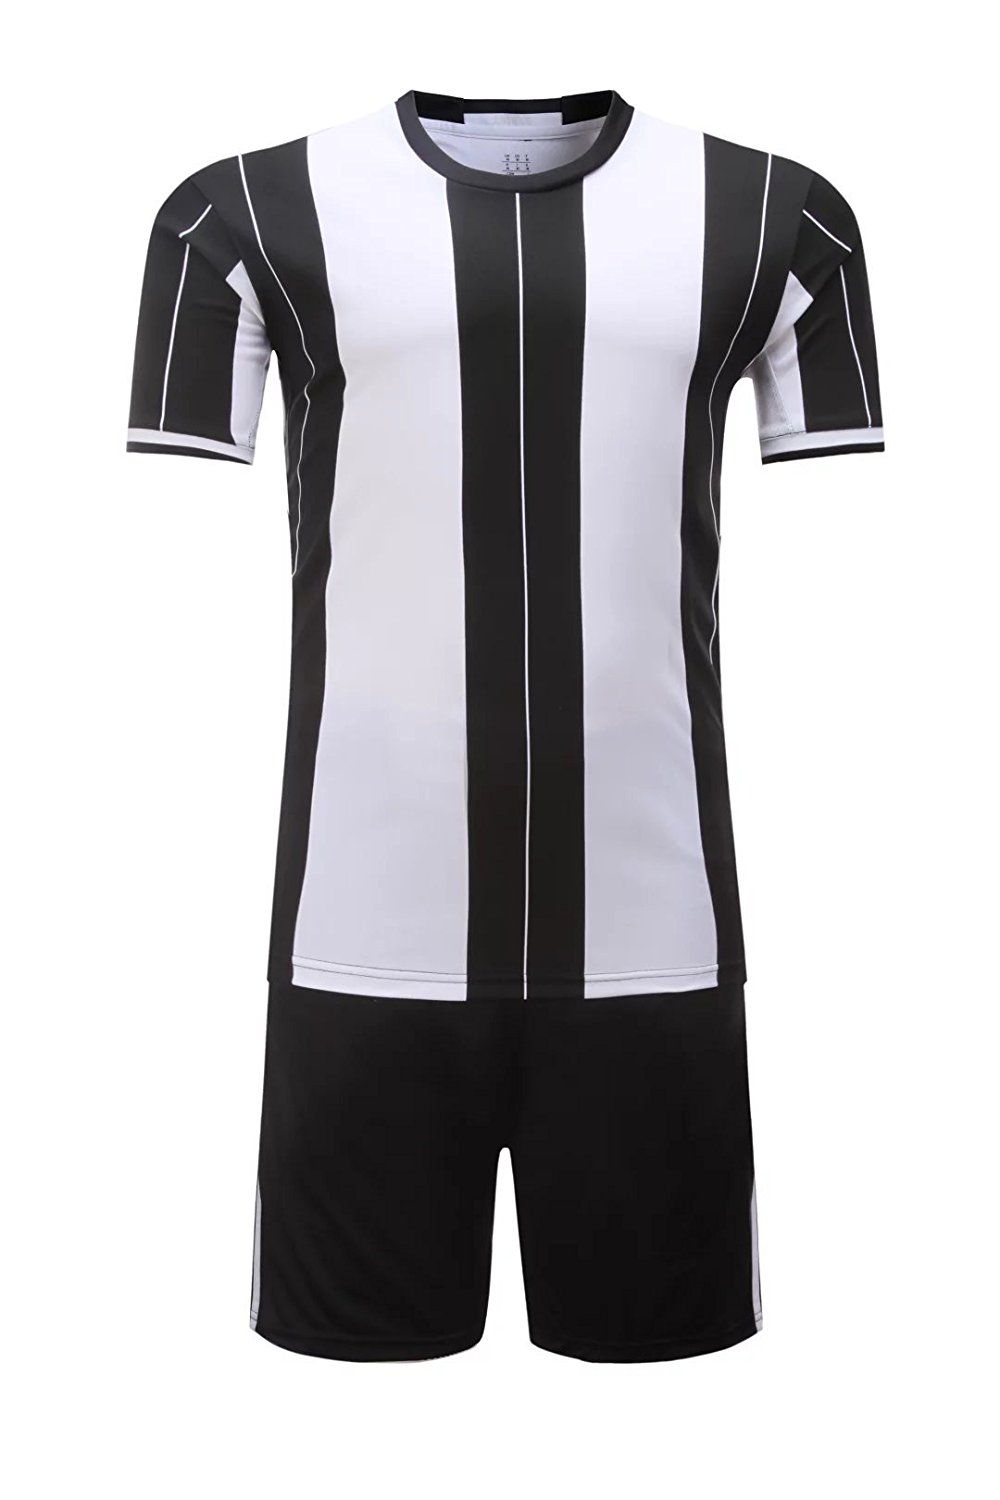 6bb7eab300a lusam feeling Sports Referee Jersey Suit Uniform Kit - Shirt + Shorts for Football  Soccer Rugby